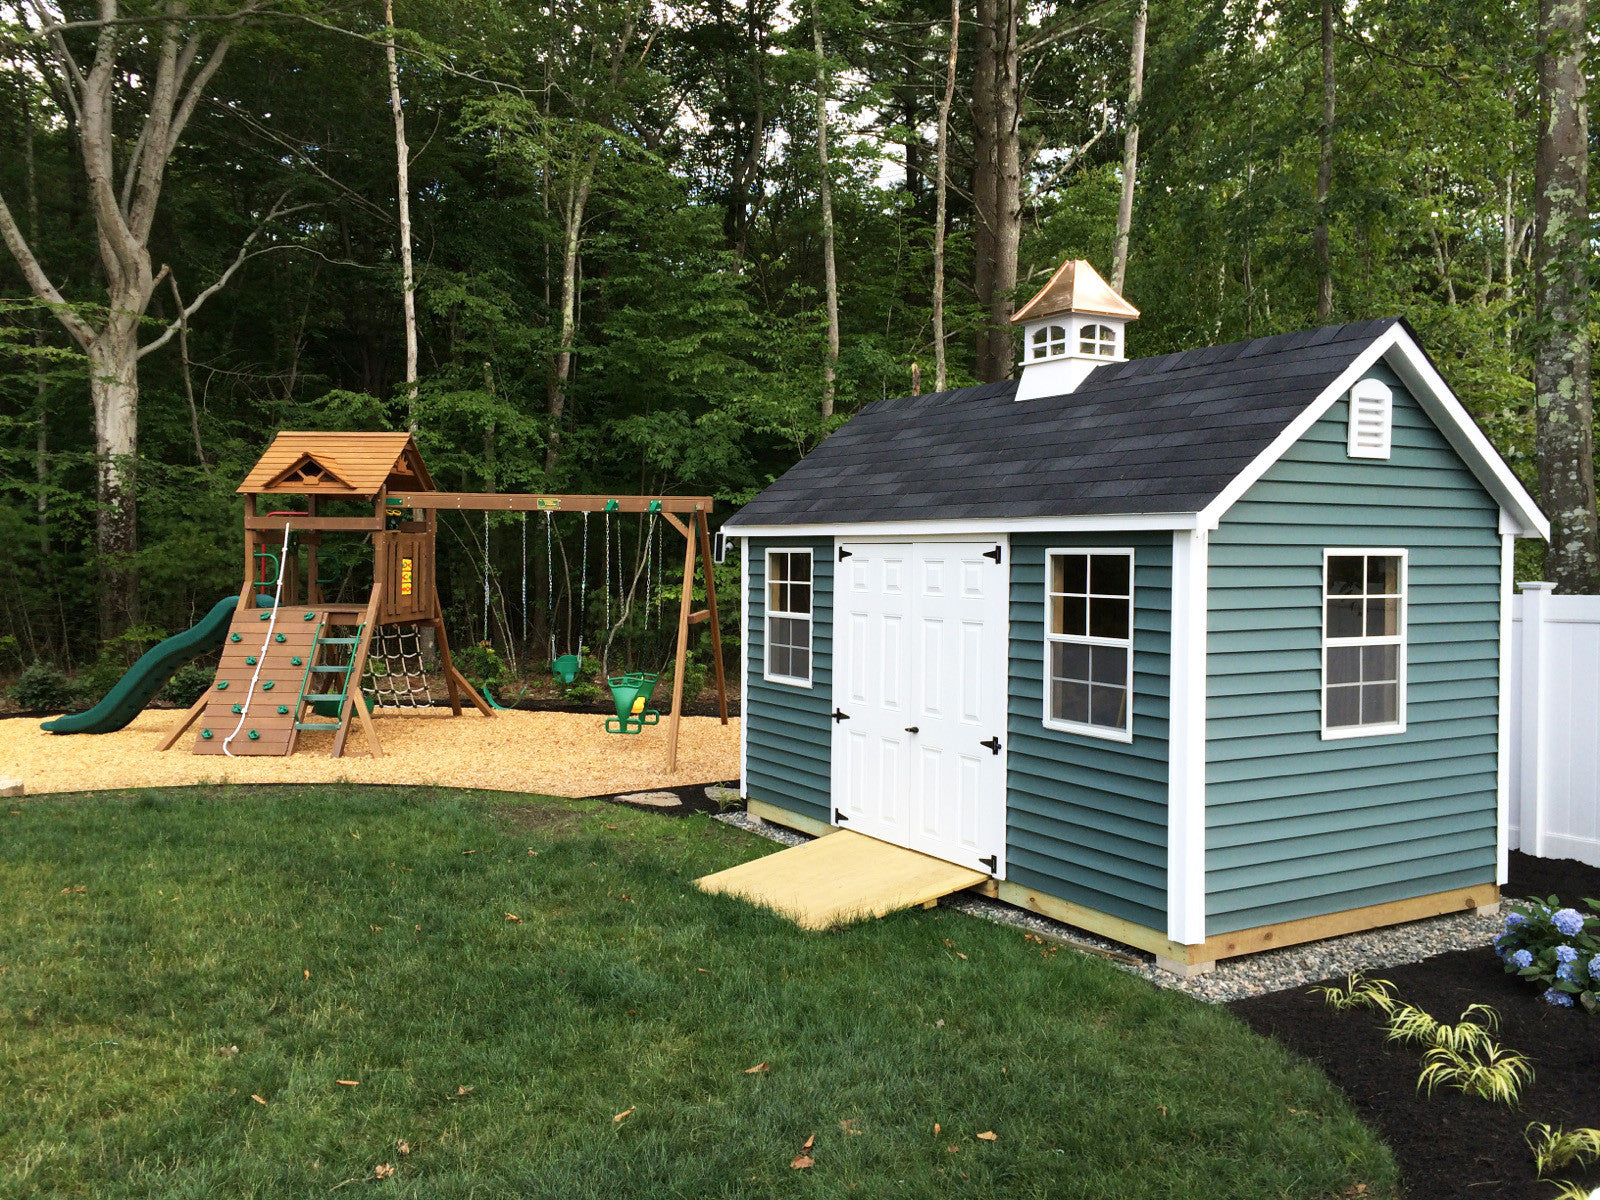 Garden Sheds New Hampshire new england outdoor sheds & gazebos | based in ma